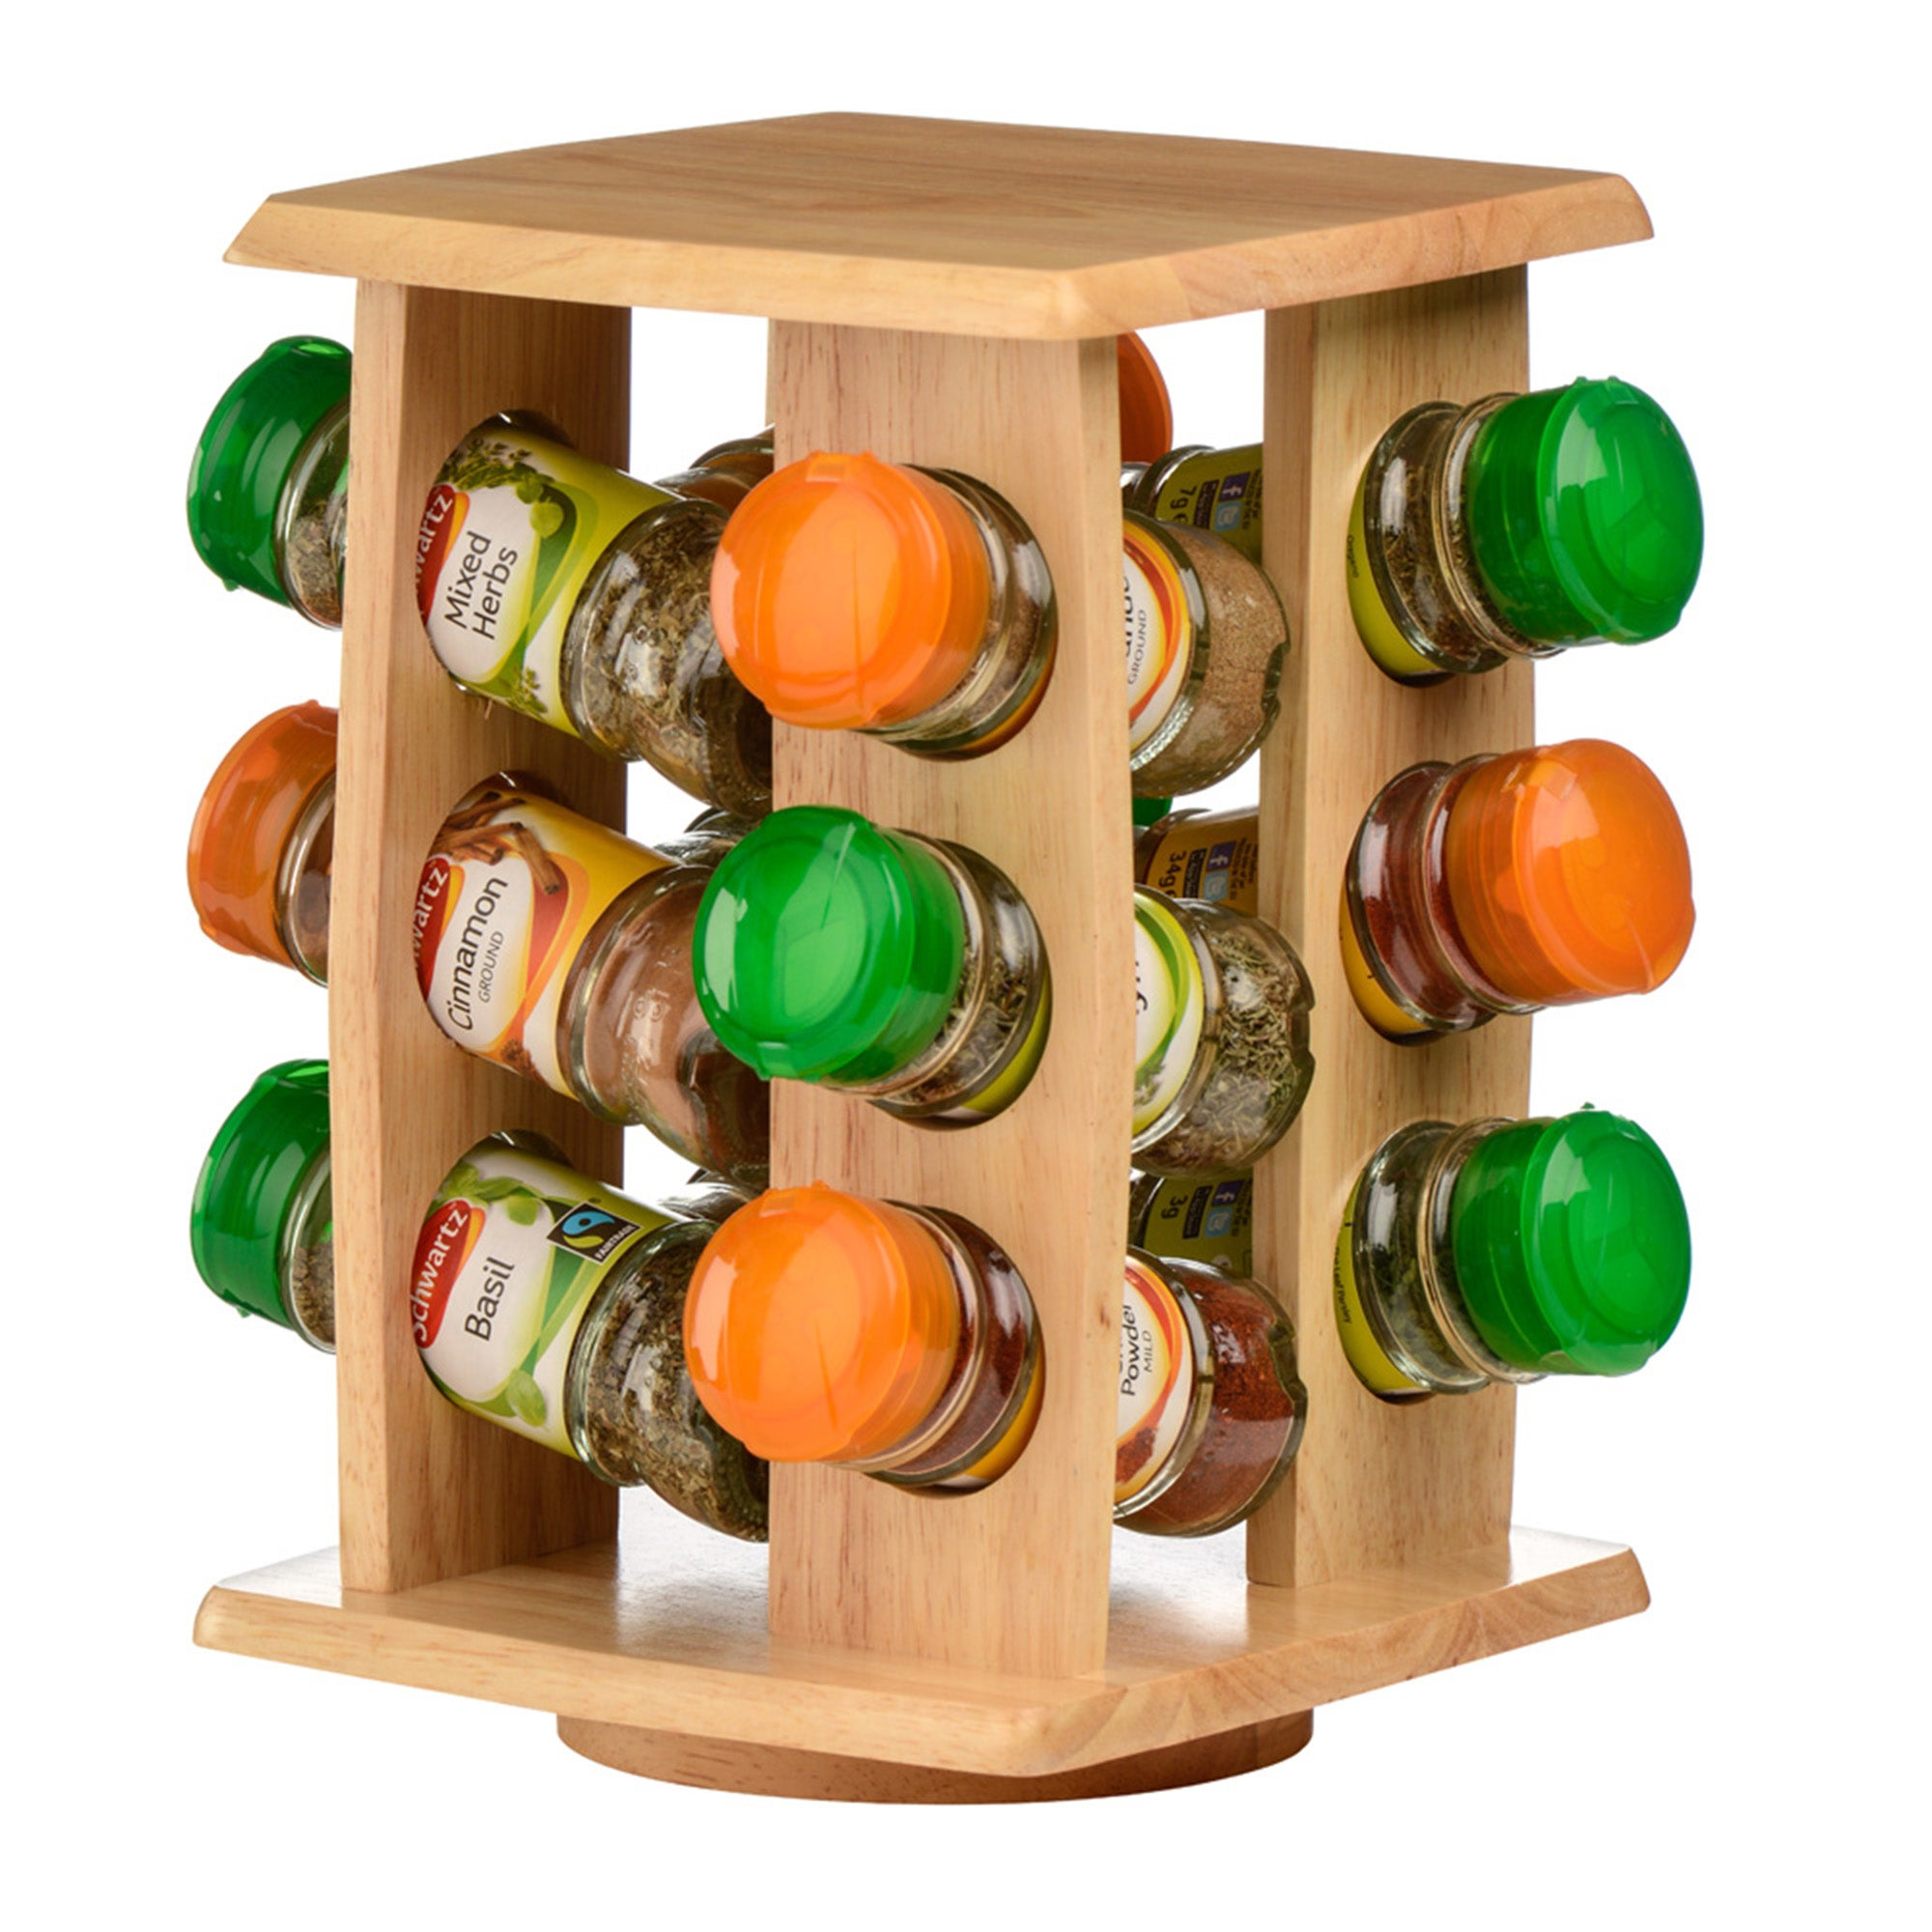 12 Jar Spice Rack